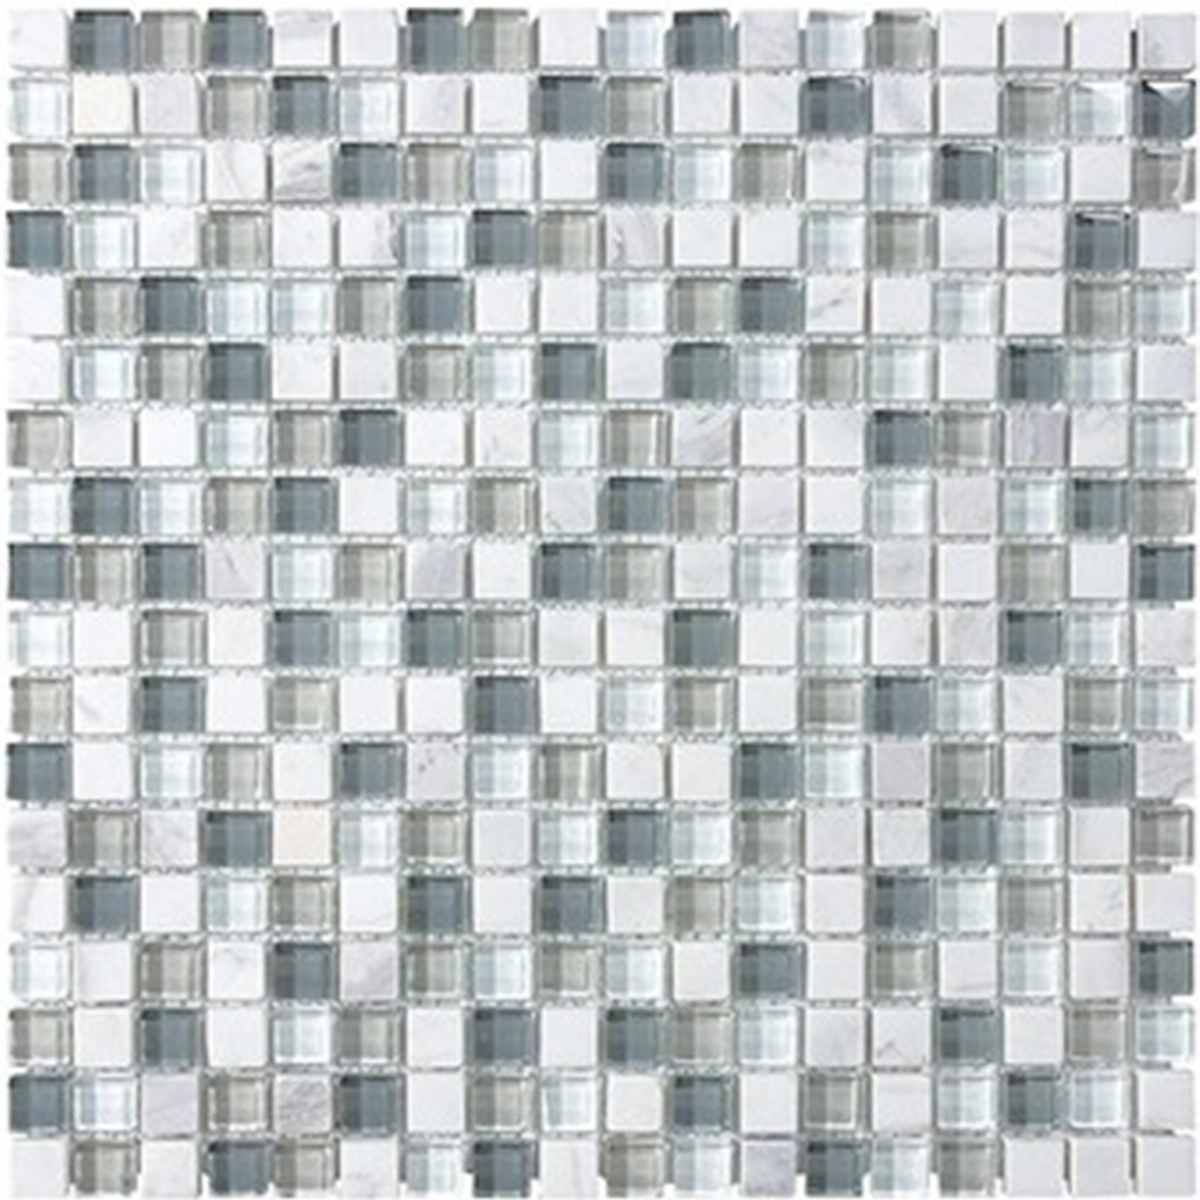 Small square tiles made of glass in different neutral shades photo